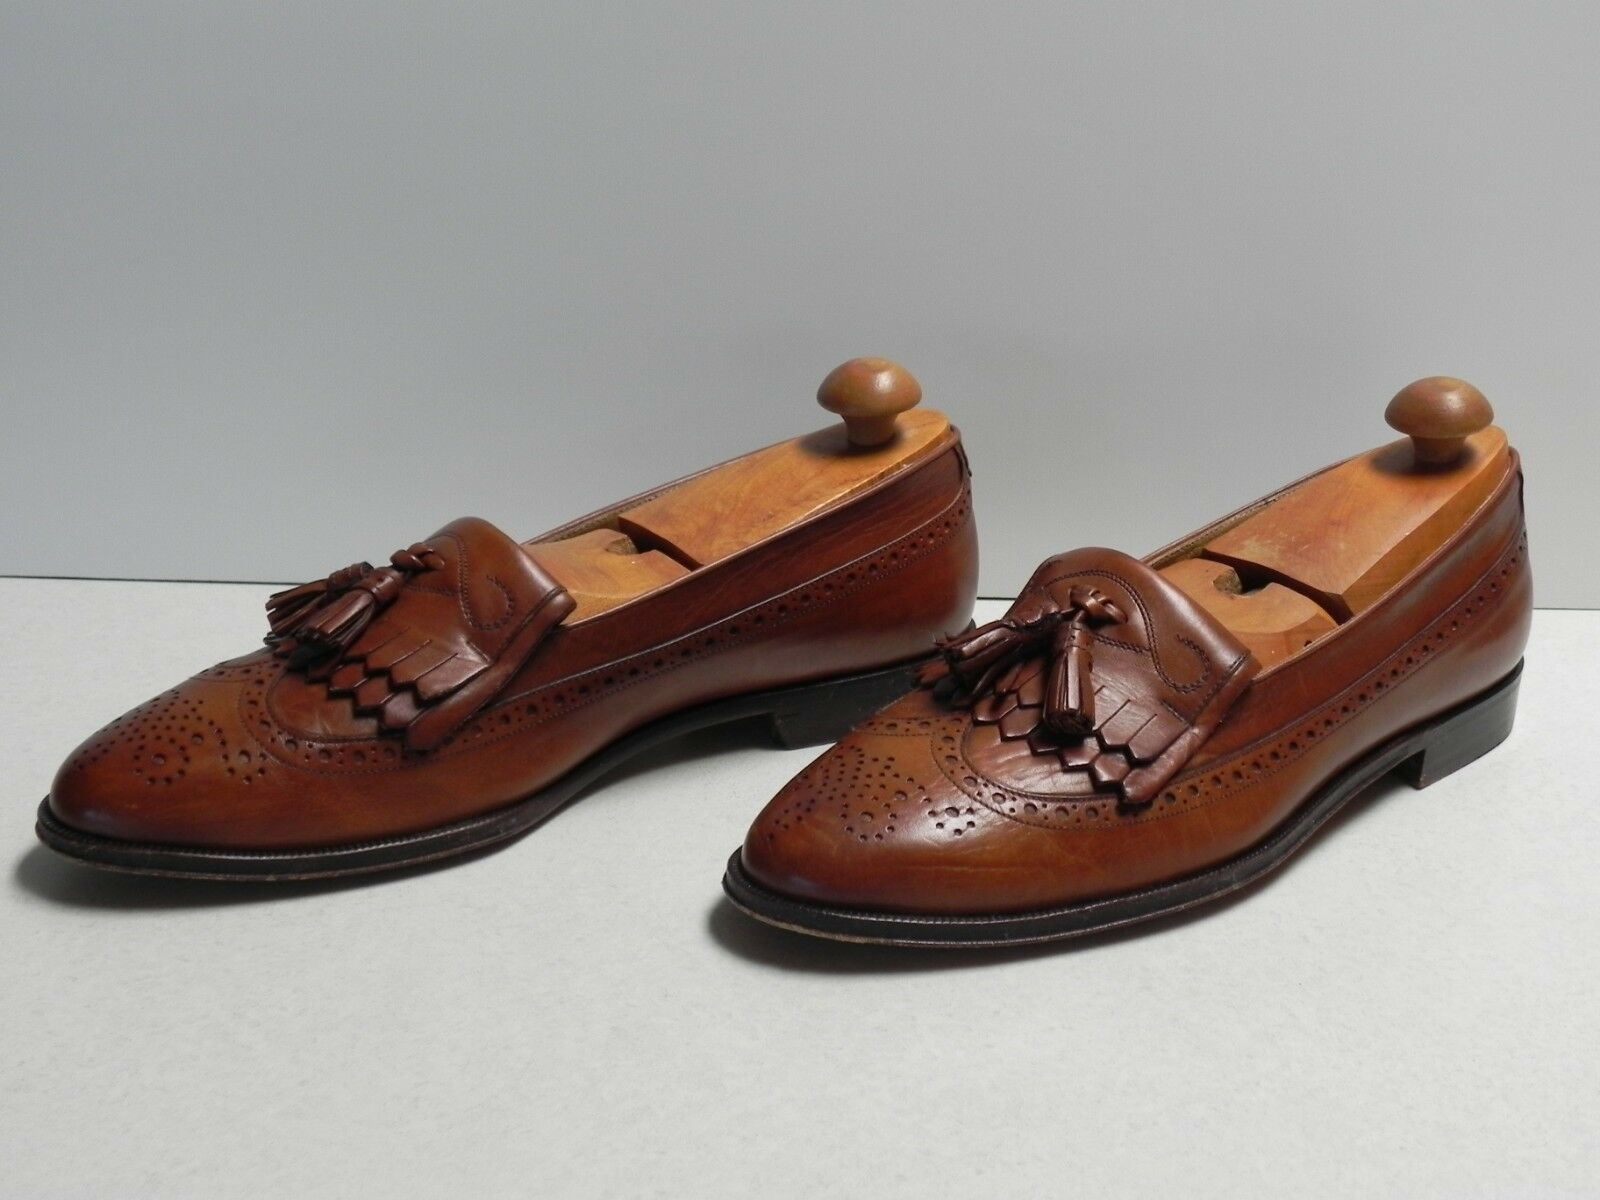 vendite calde Uomo Bruno Magli Magli Magli Marvin Marrone Leather Dress scarpe Slide On Loafers  9.5 N  ti aspetto